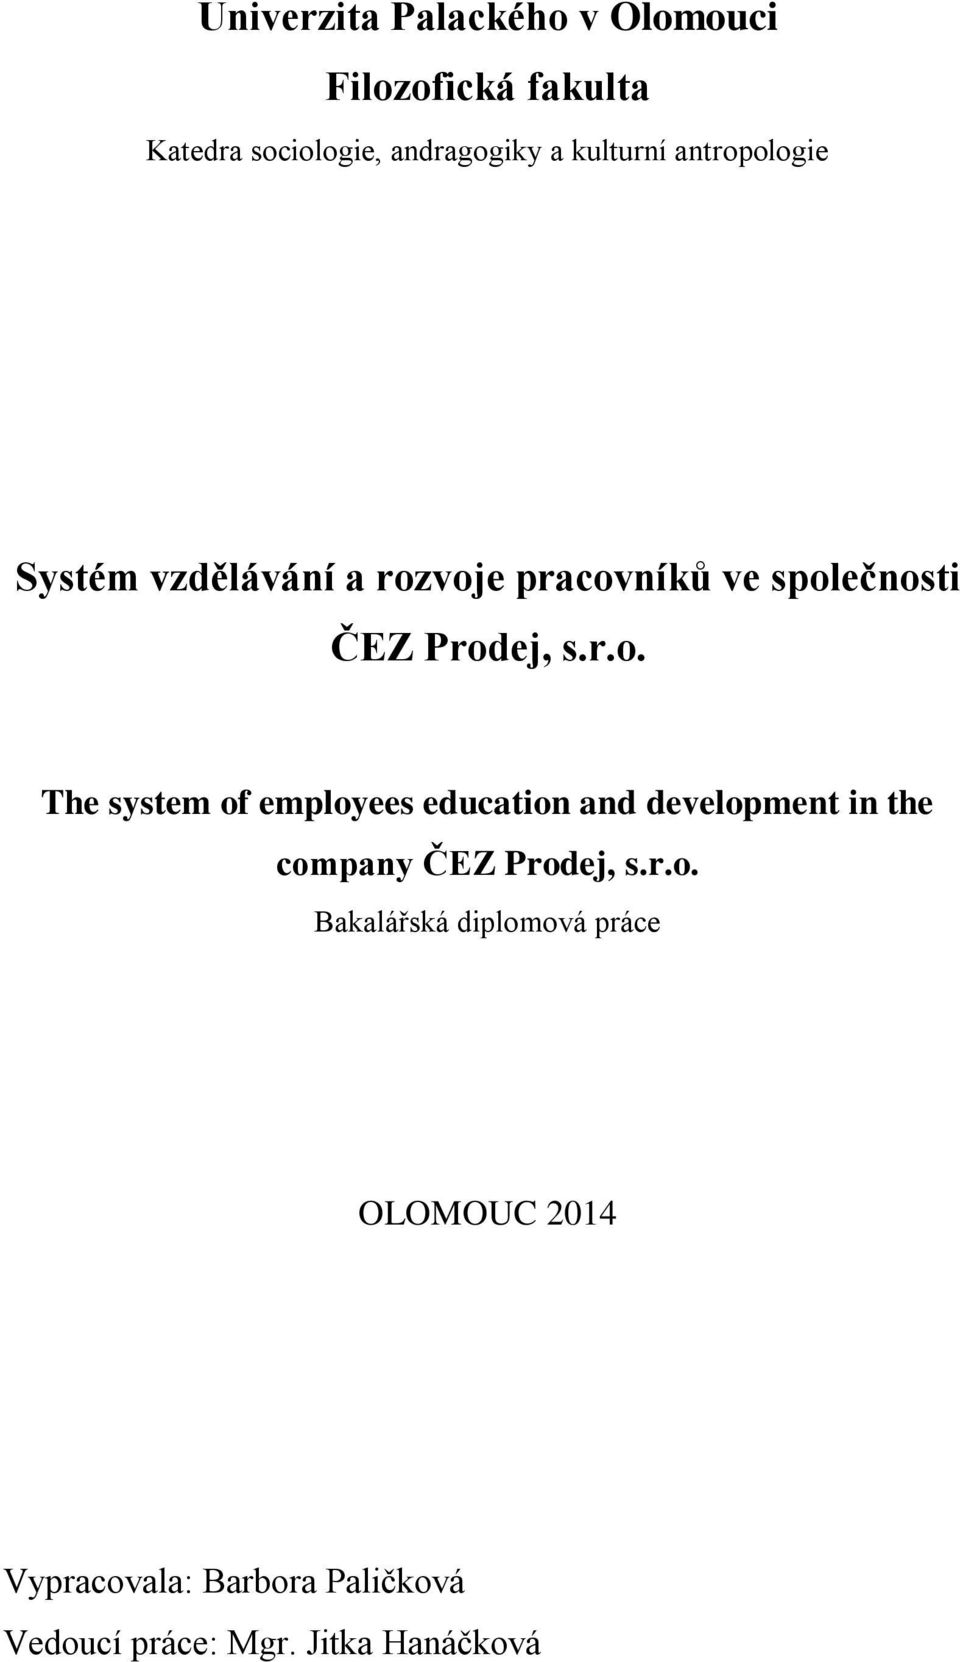 ologie Systém vzdělávání a rozvoje pracovníků ve společnosti ČEZ Prodej, s.r.o. The system of employees education and development in the company ČEZ Prodej, s.